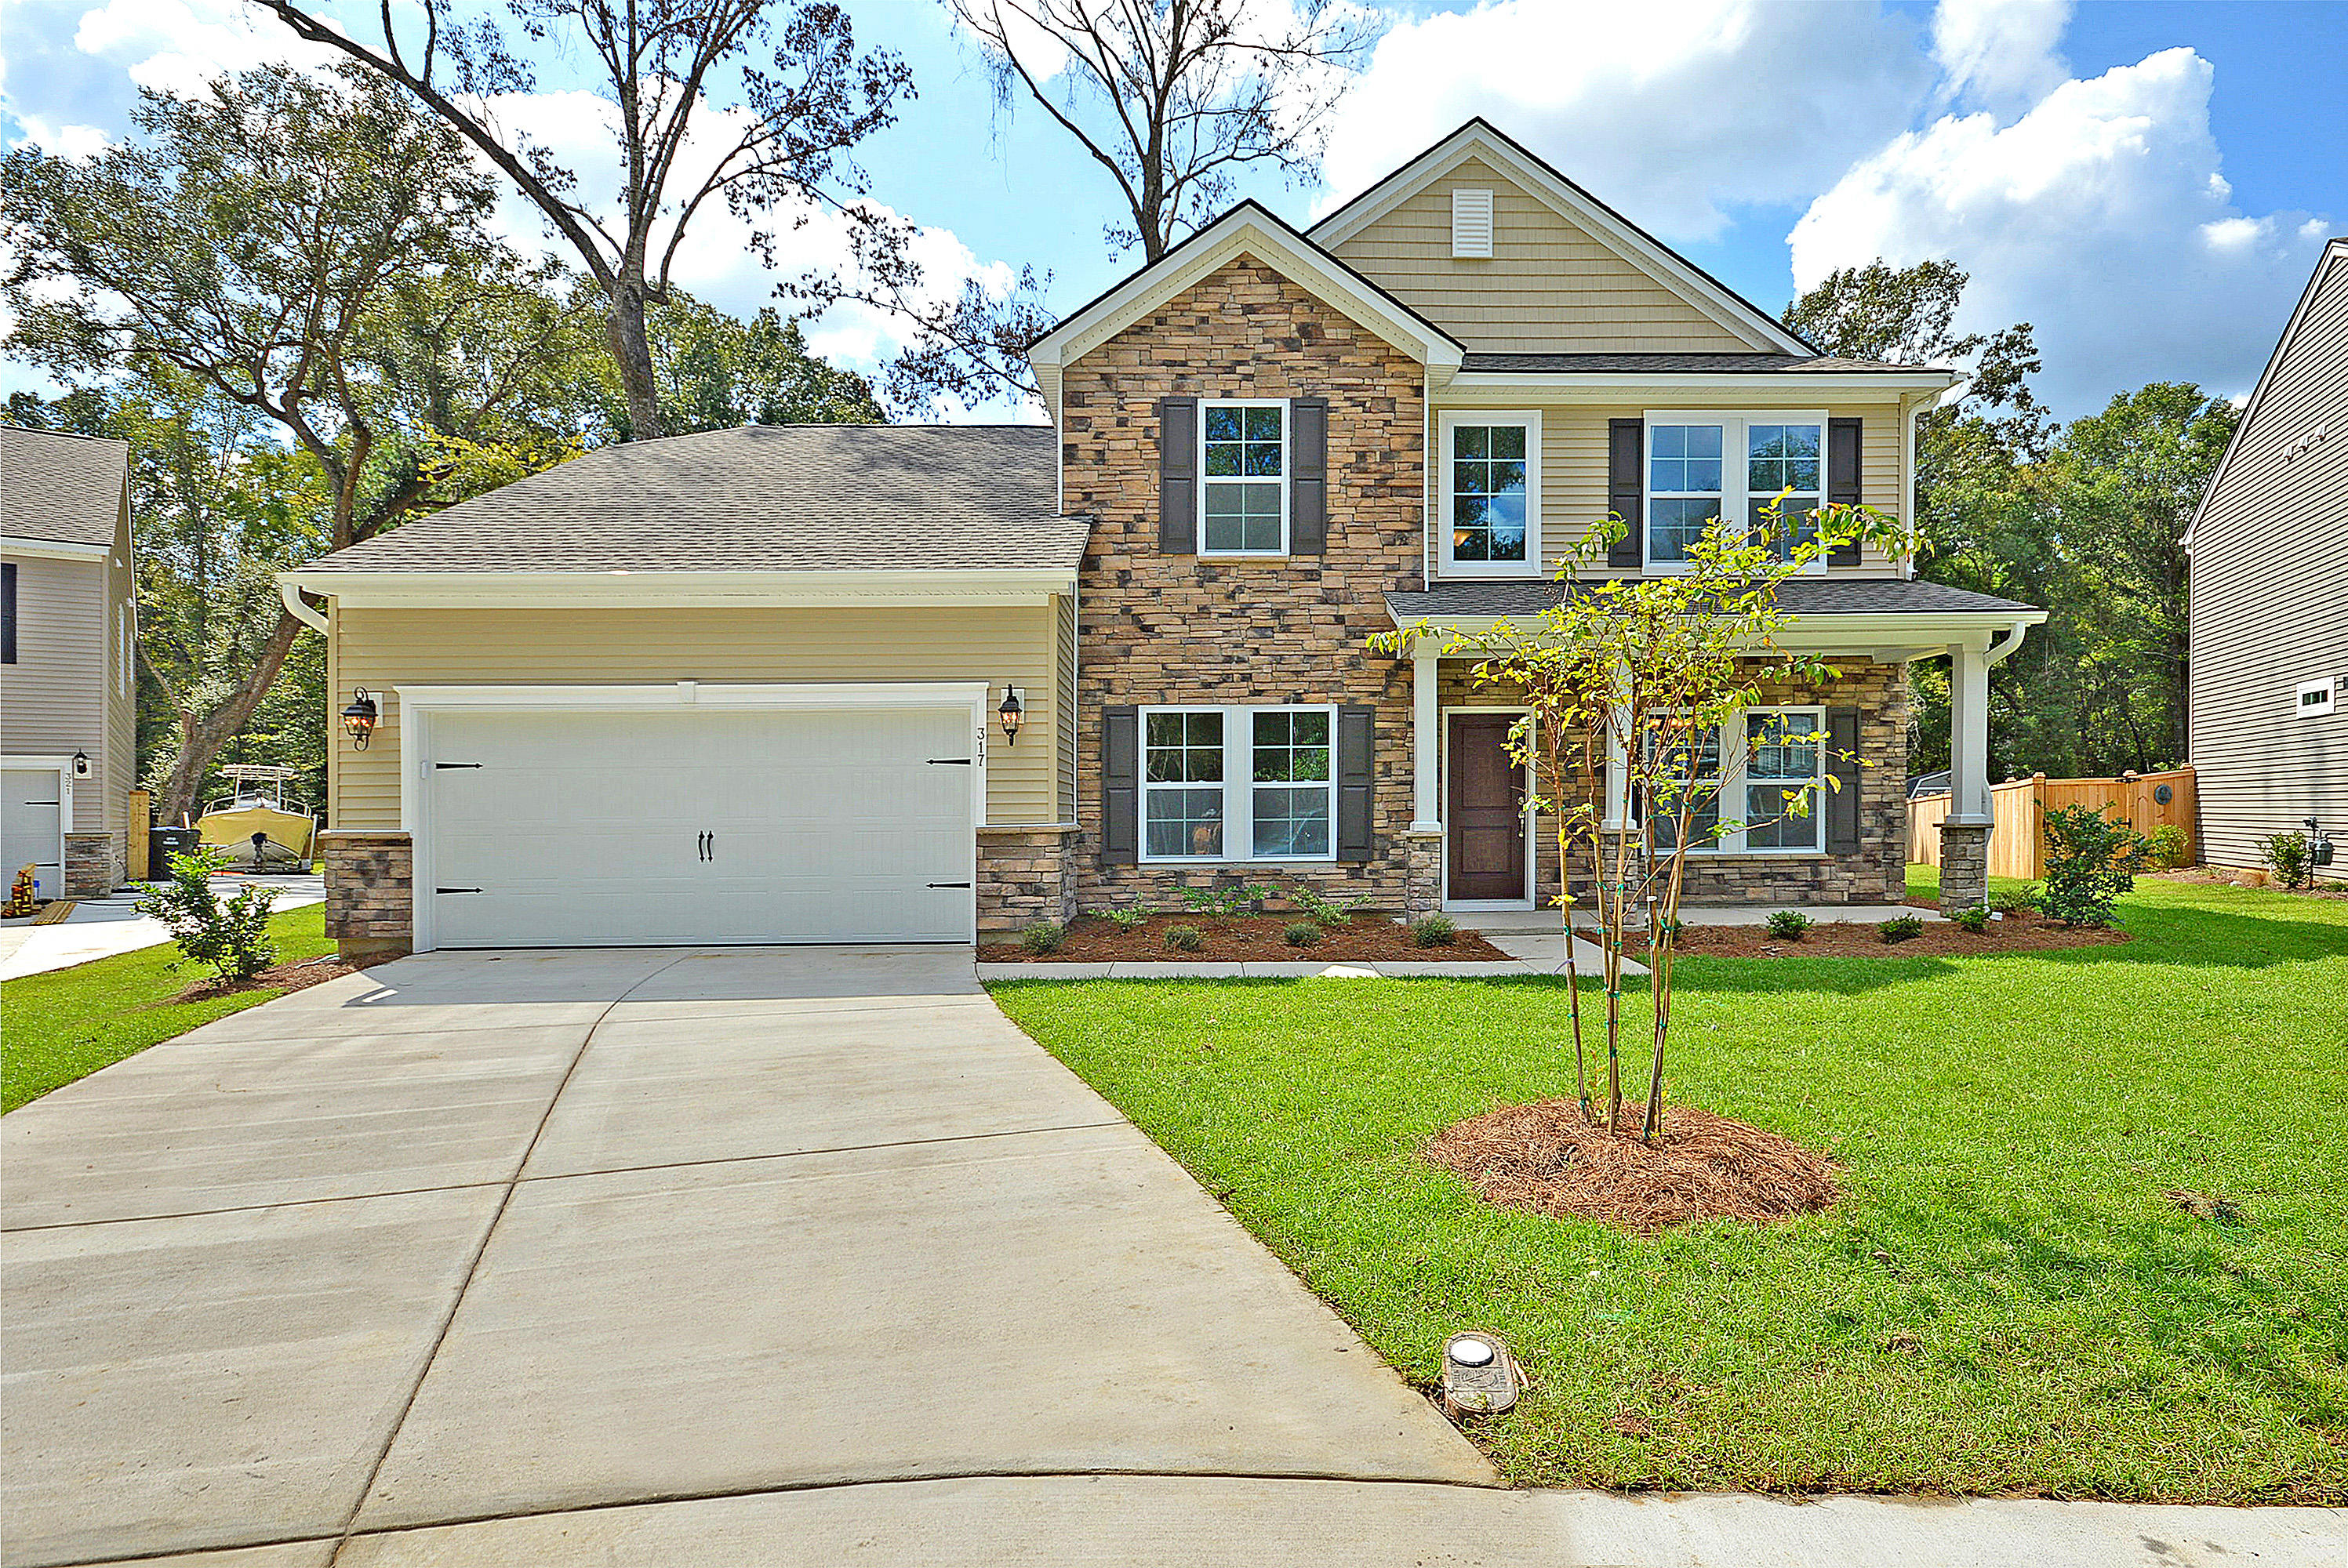 449 Richfield Way Summerville, SC 29486